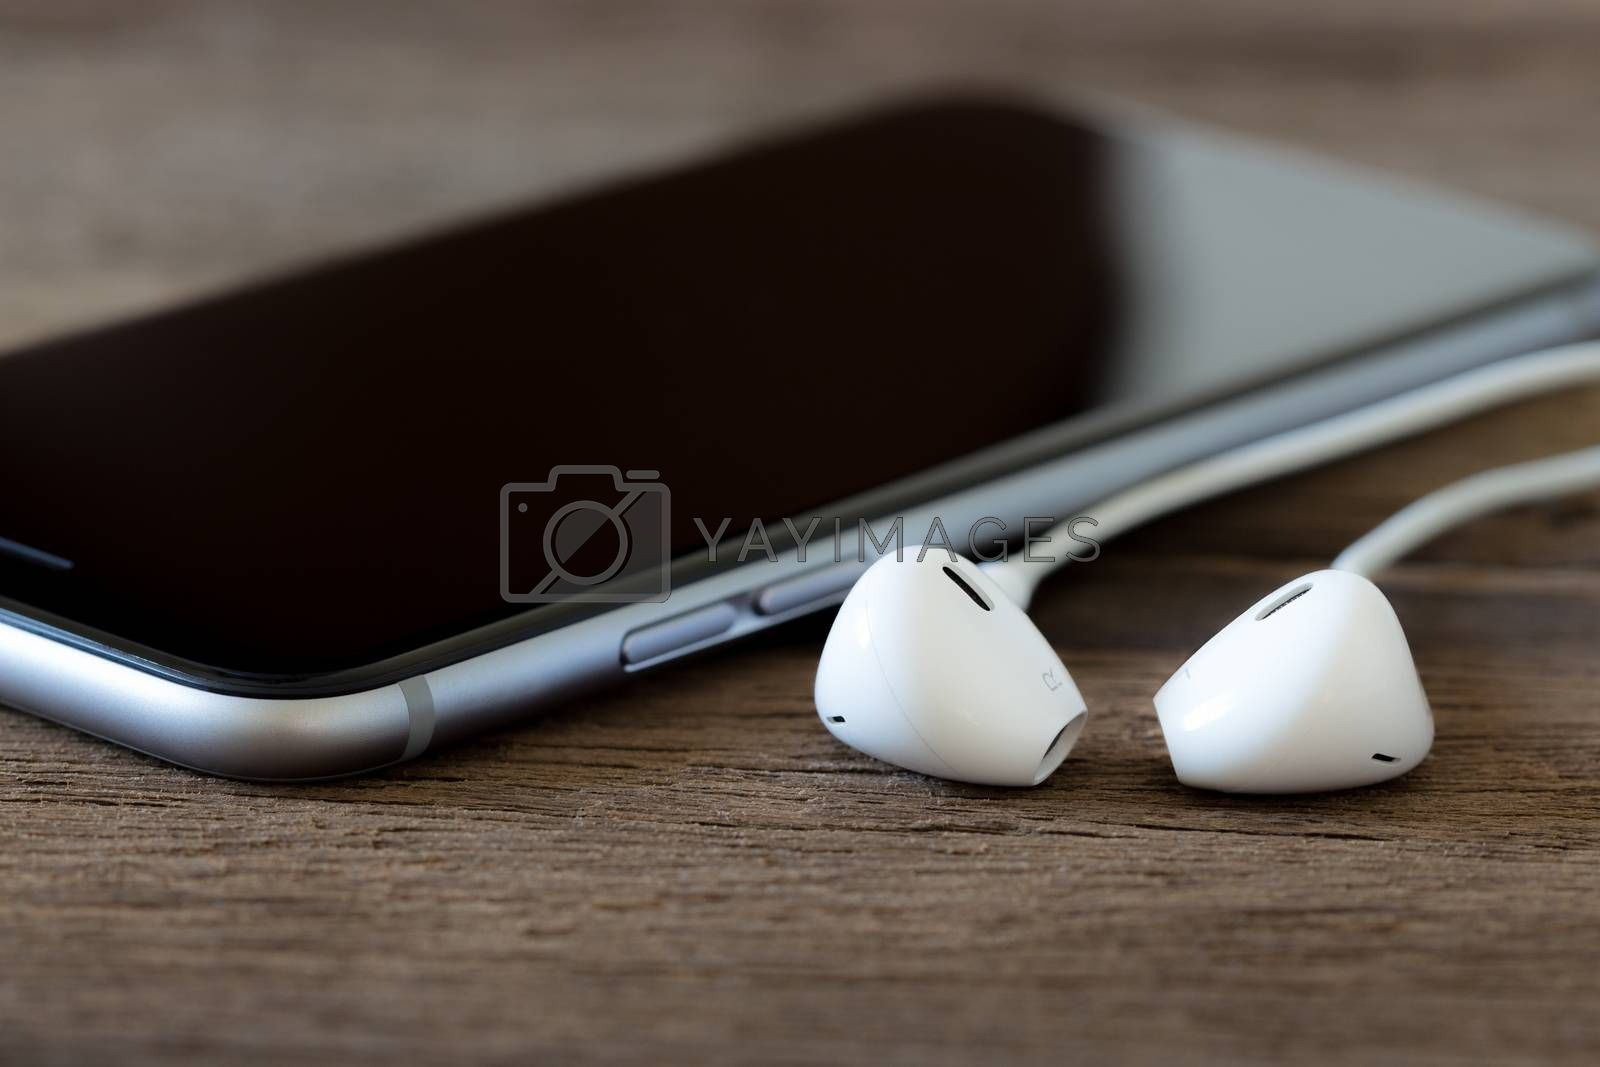 Royalty free image of closeup phone and earbud on wood desk by blackzheep